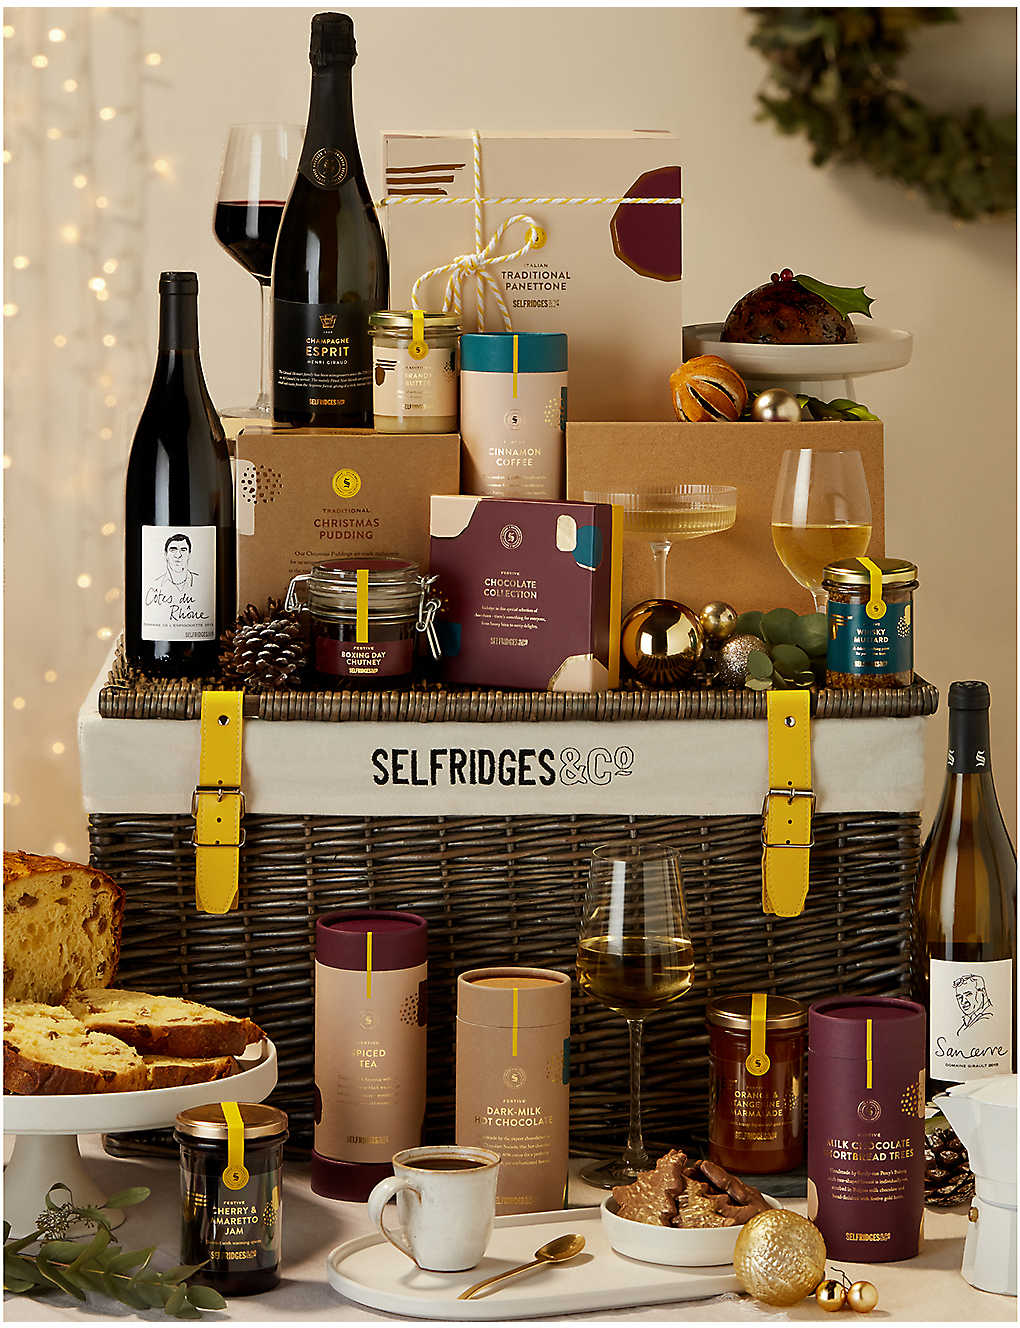 SELFRIDGES SELECTION: Christmas Pantry Hamper